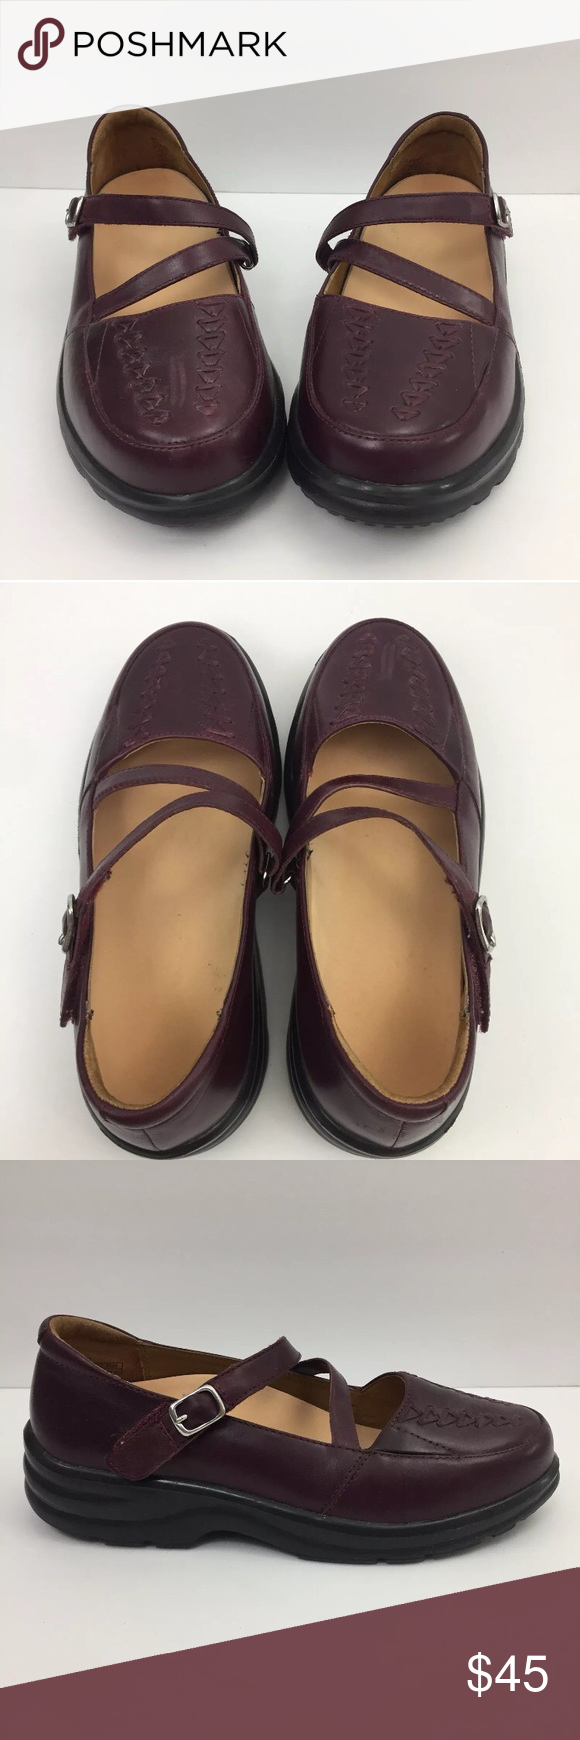 51a244d321ab Dr Comfort Betsy Shoes Size 5.5 W Mary Janes Dr Comfort Betsy Women Size  5.5 Wide Burgundy Mary Jane Diabetic Orthopedic Shoe Condition  very gentle  signs ...